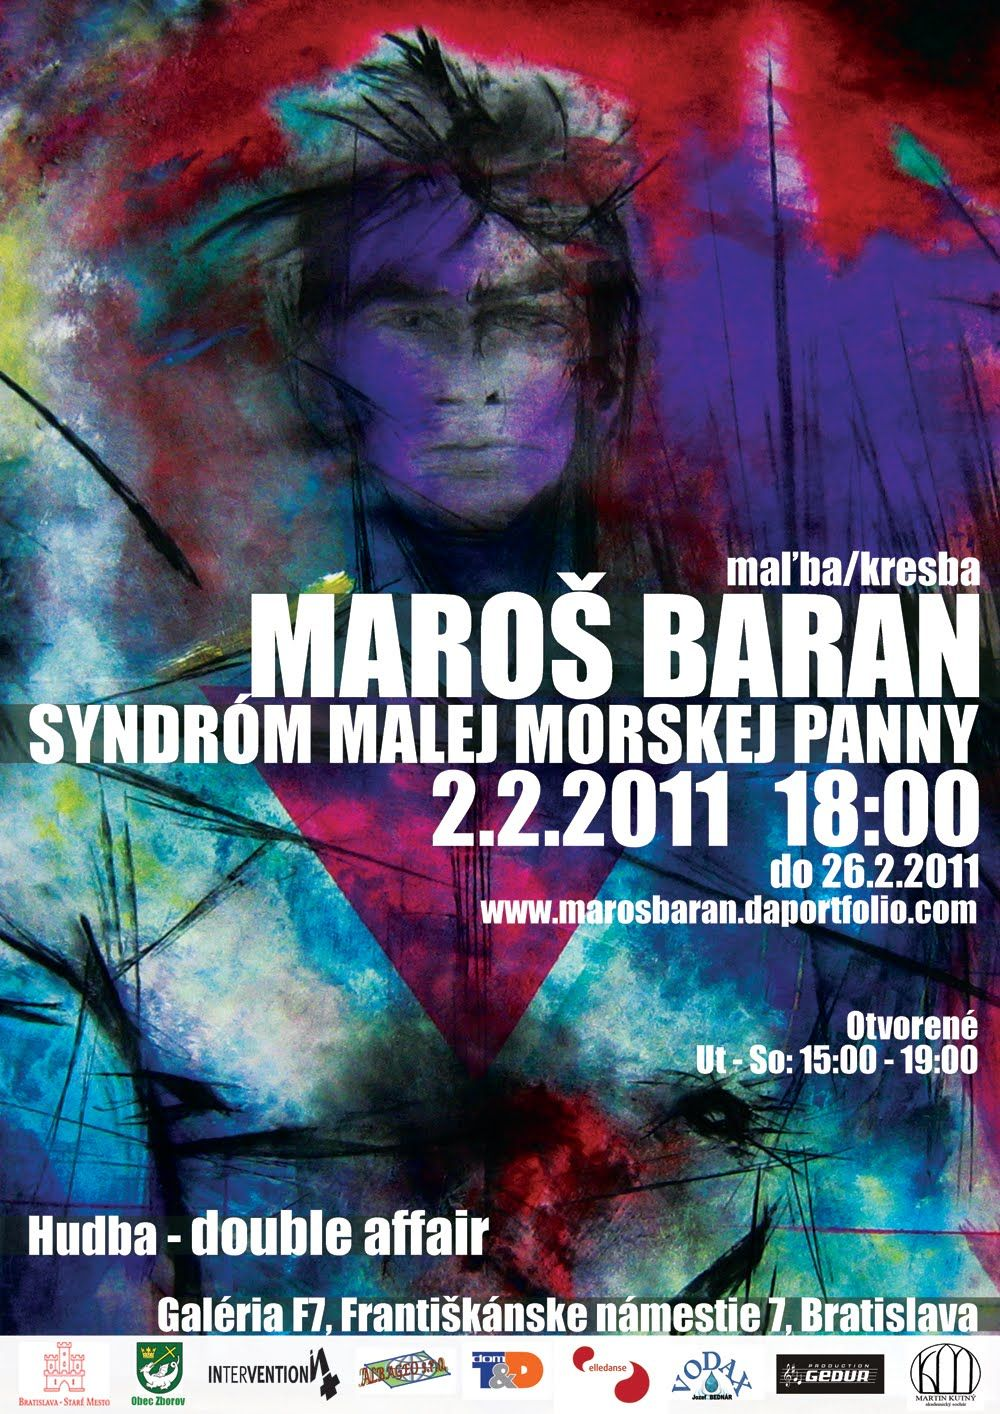 MAROŠ BARAN - THE LITTLE MERMAID SYNDROME 2011    exhibition trailer, music - double affair    (2.2.2011 - 26.2.2011) -- F7 Gallery, Františkánske námestie 7, Bratislava